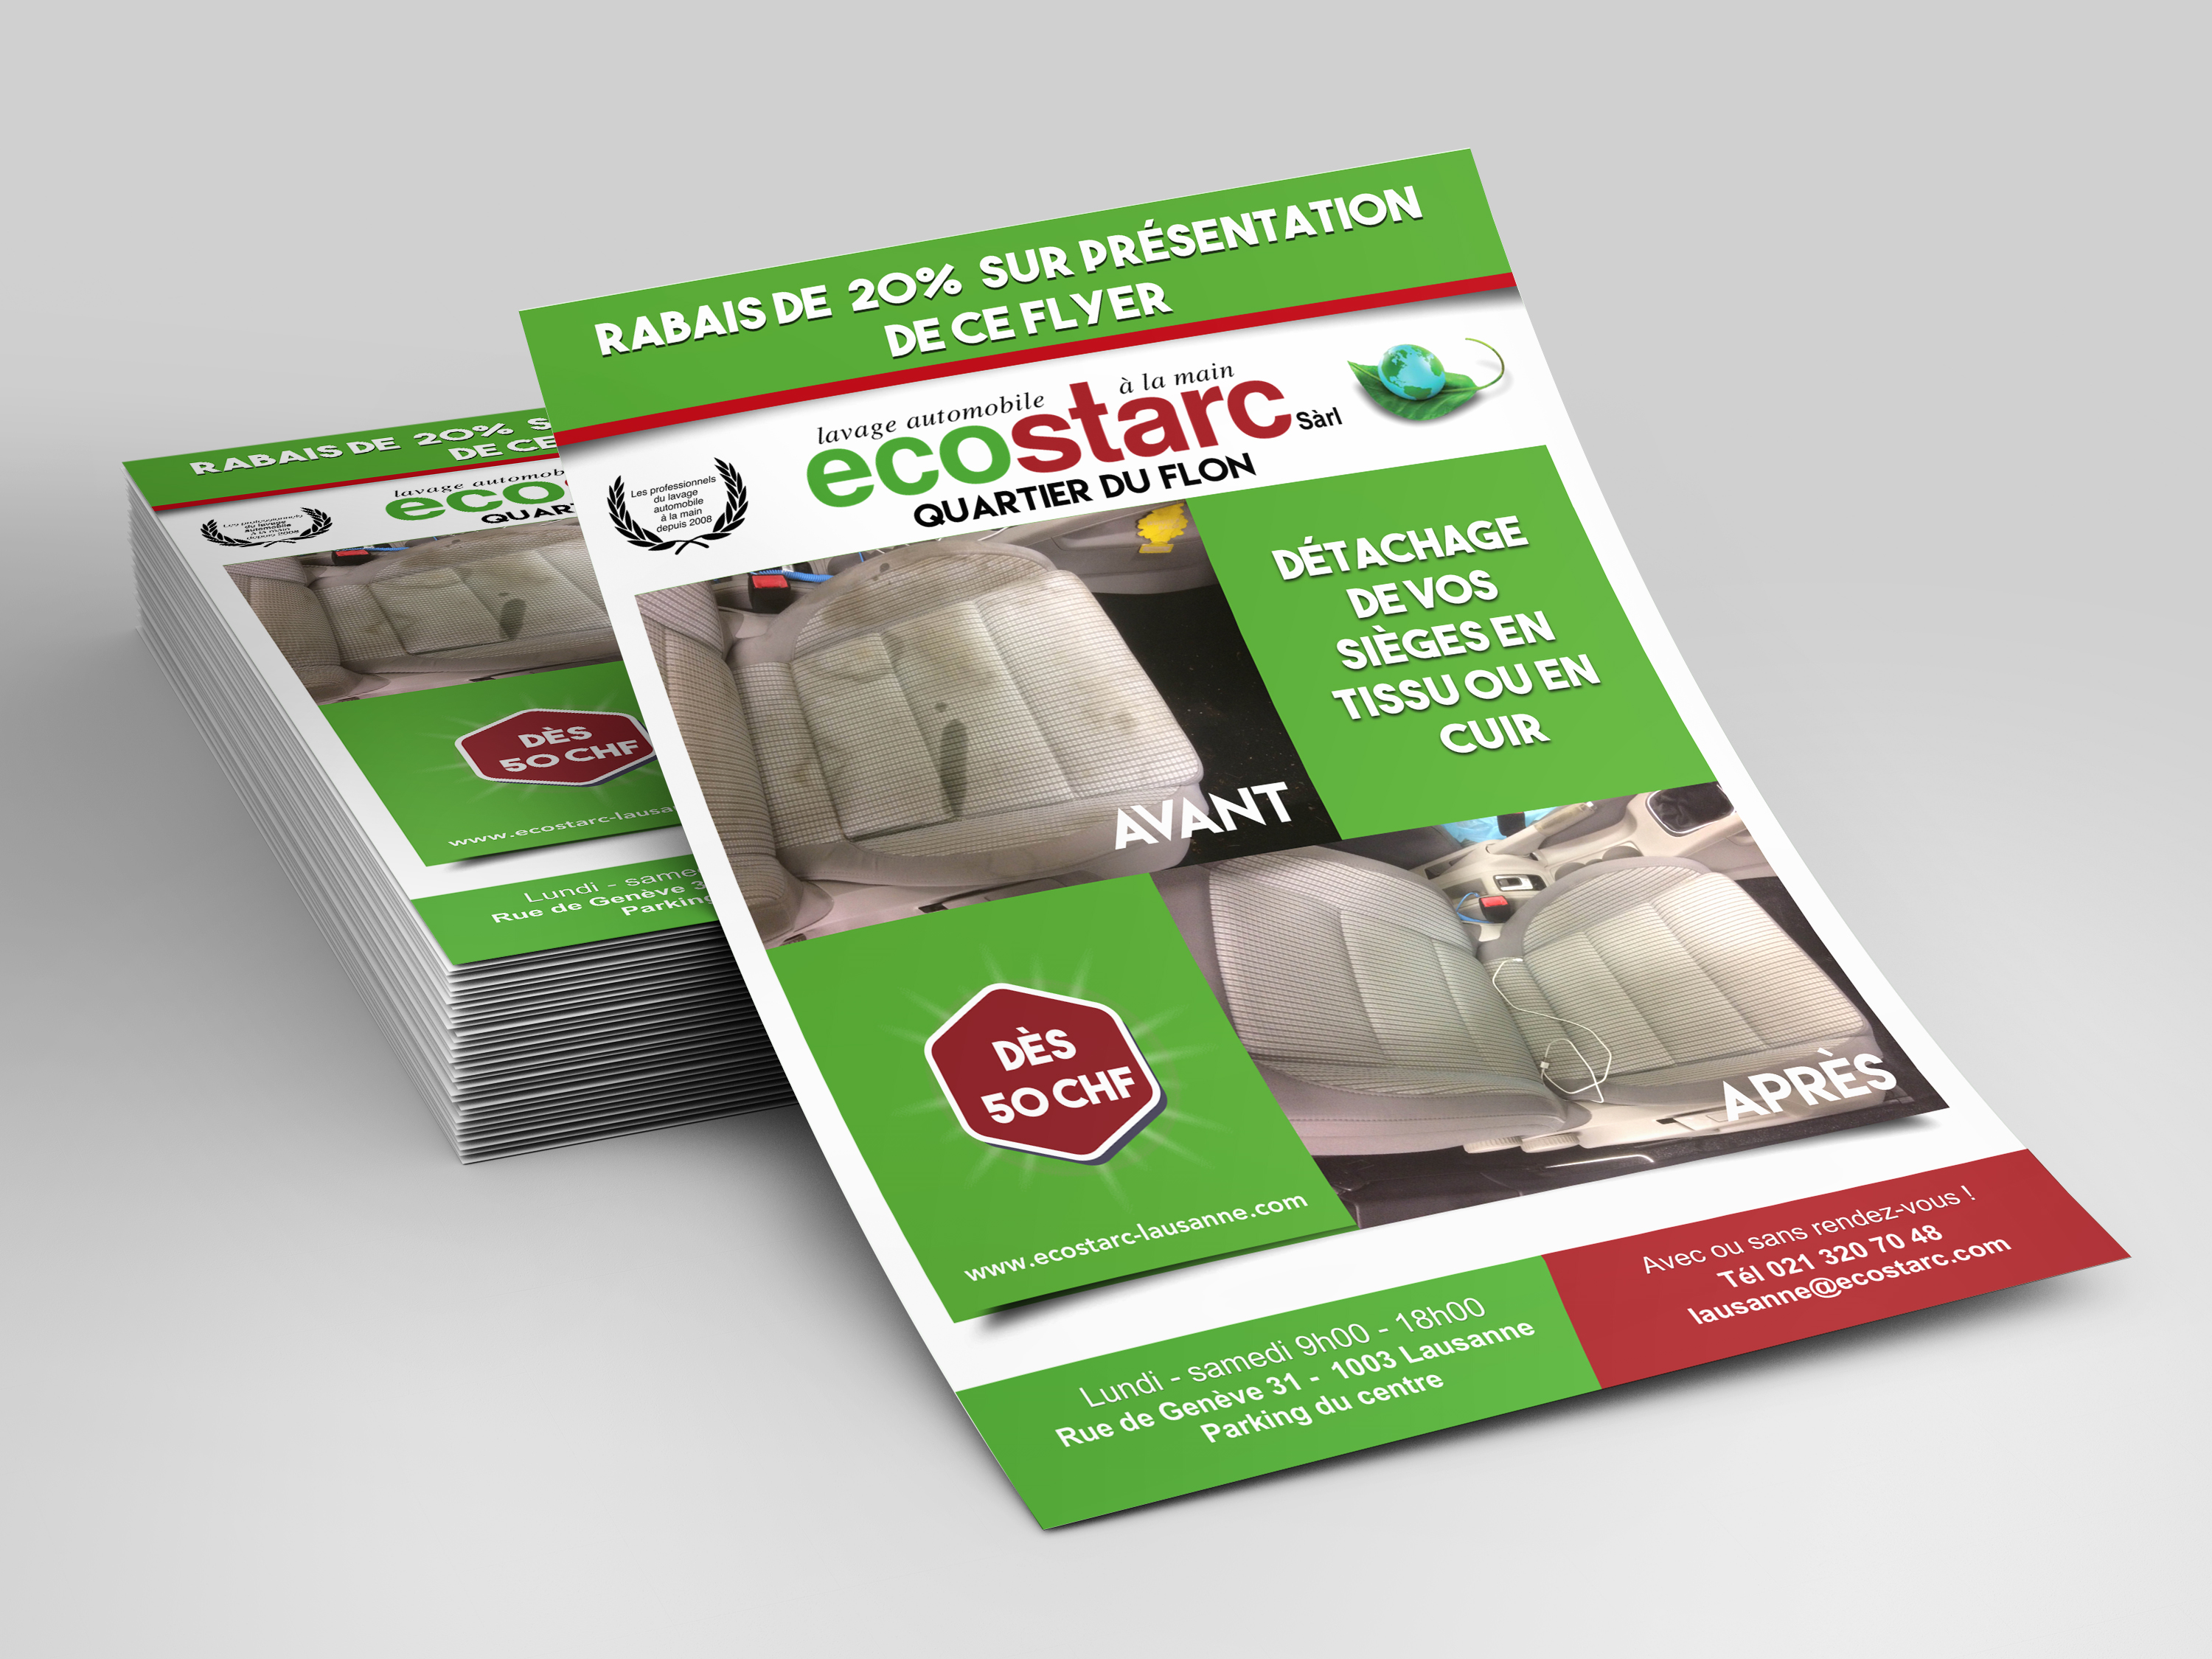 Conception, impression et distribution (service 3 en 1) pour le garage Ecostarc